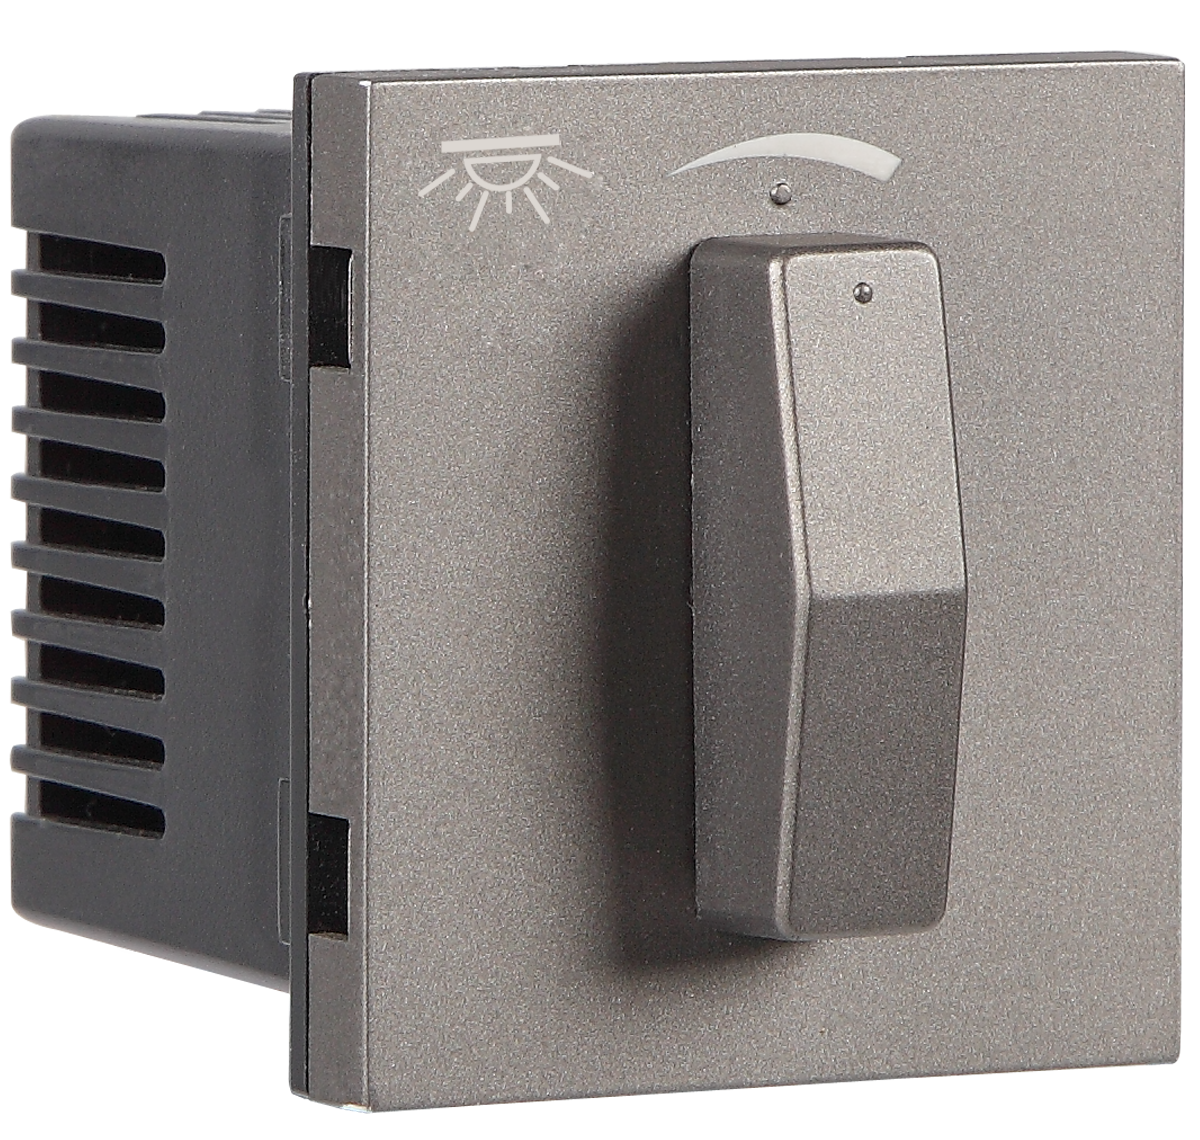 Crabtree - DIMMER 1000 W (2 M)